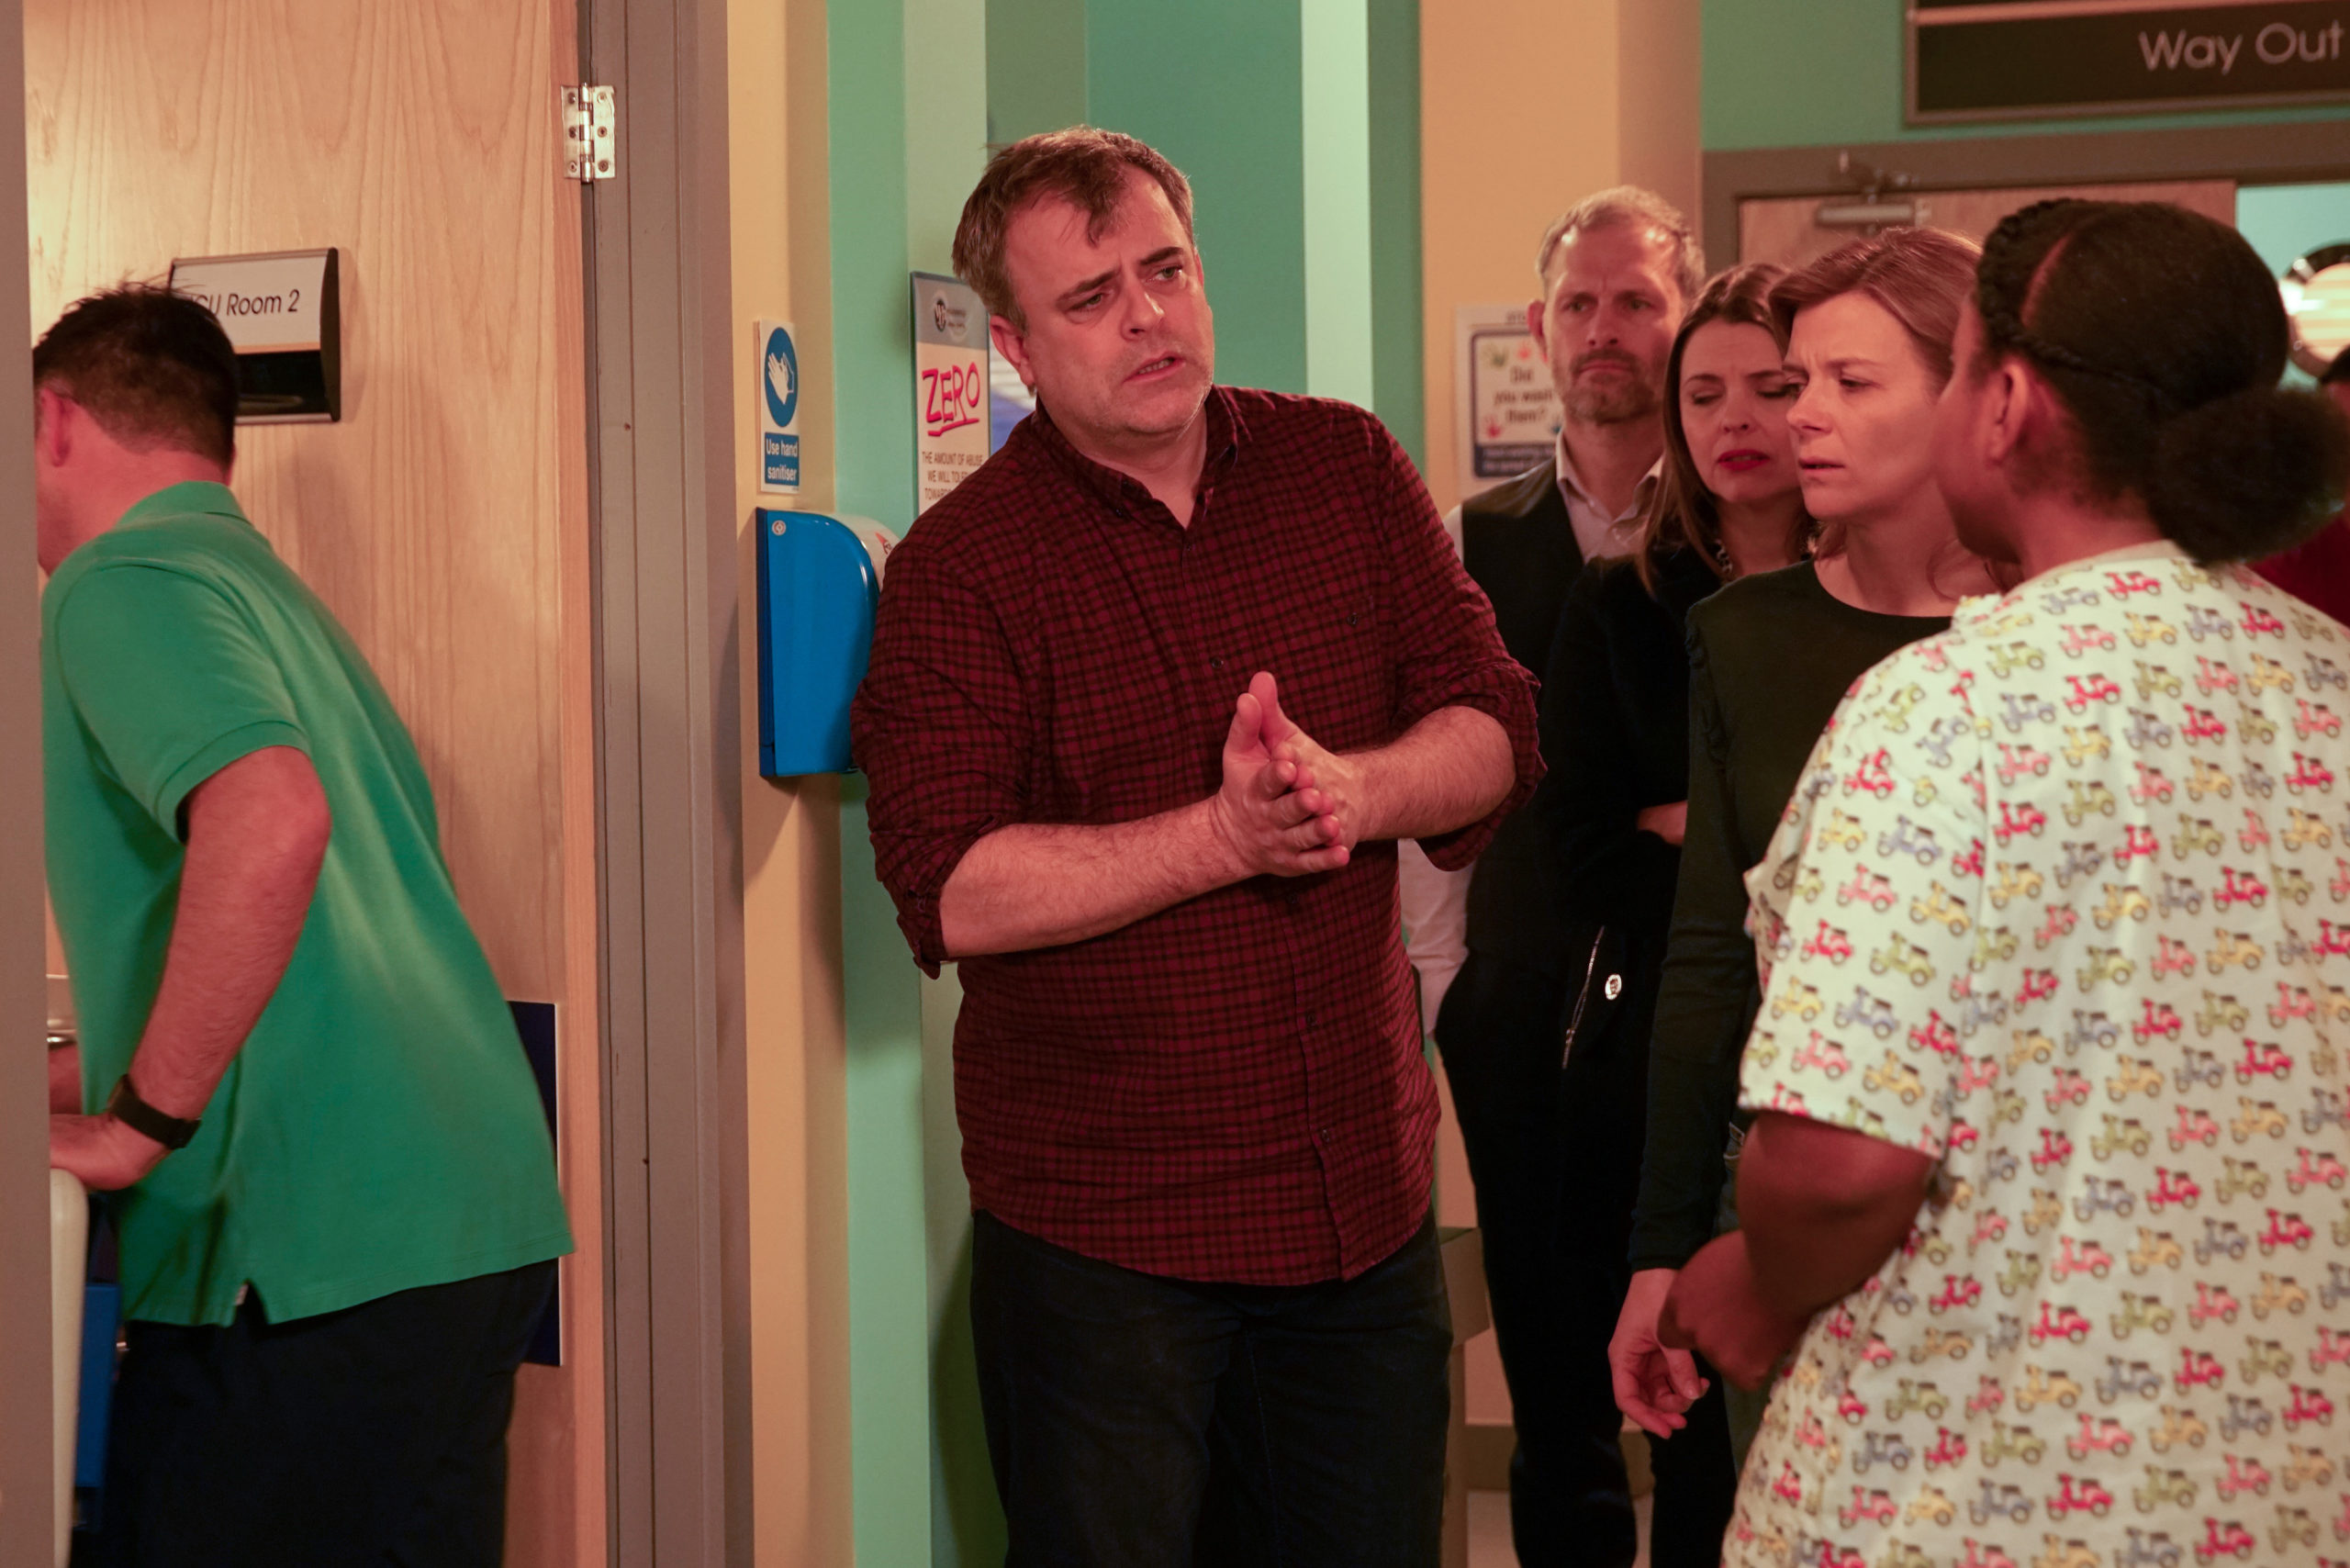 Coronation Street fans fuming with Steve over his treatment of NHS staff